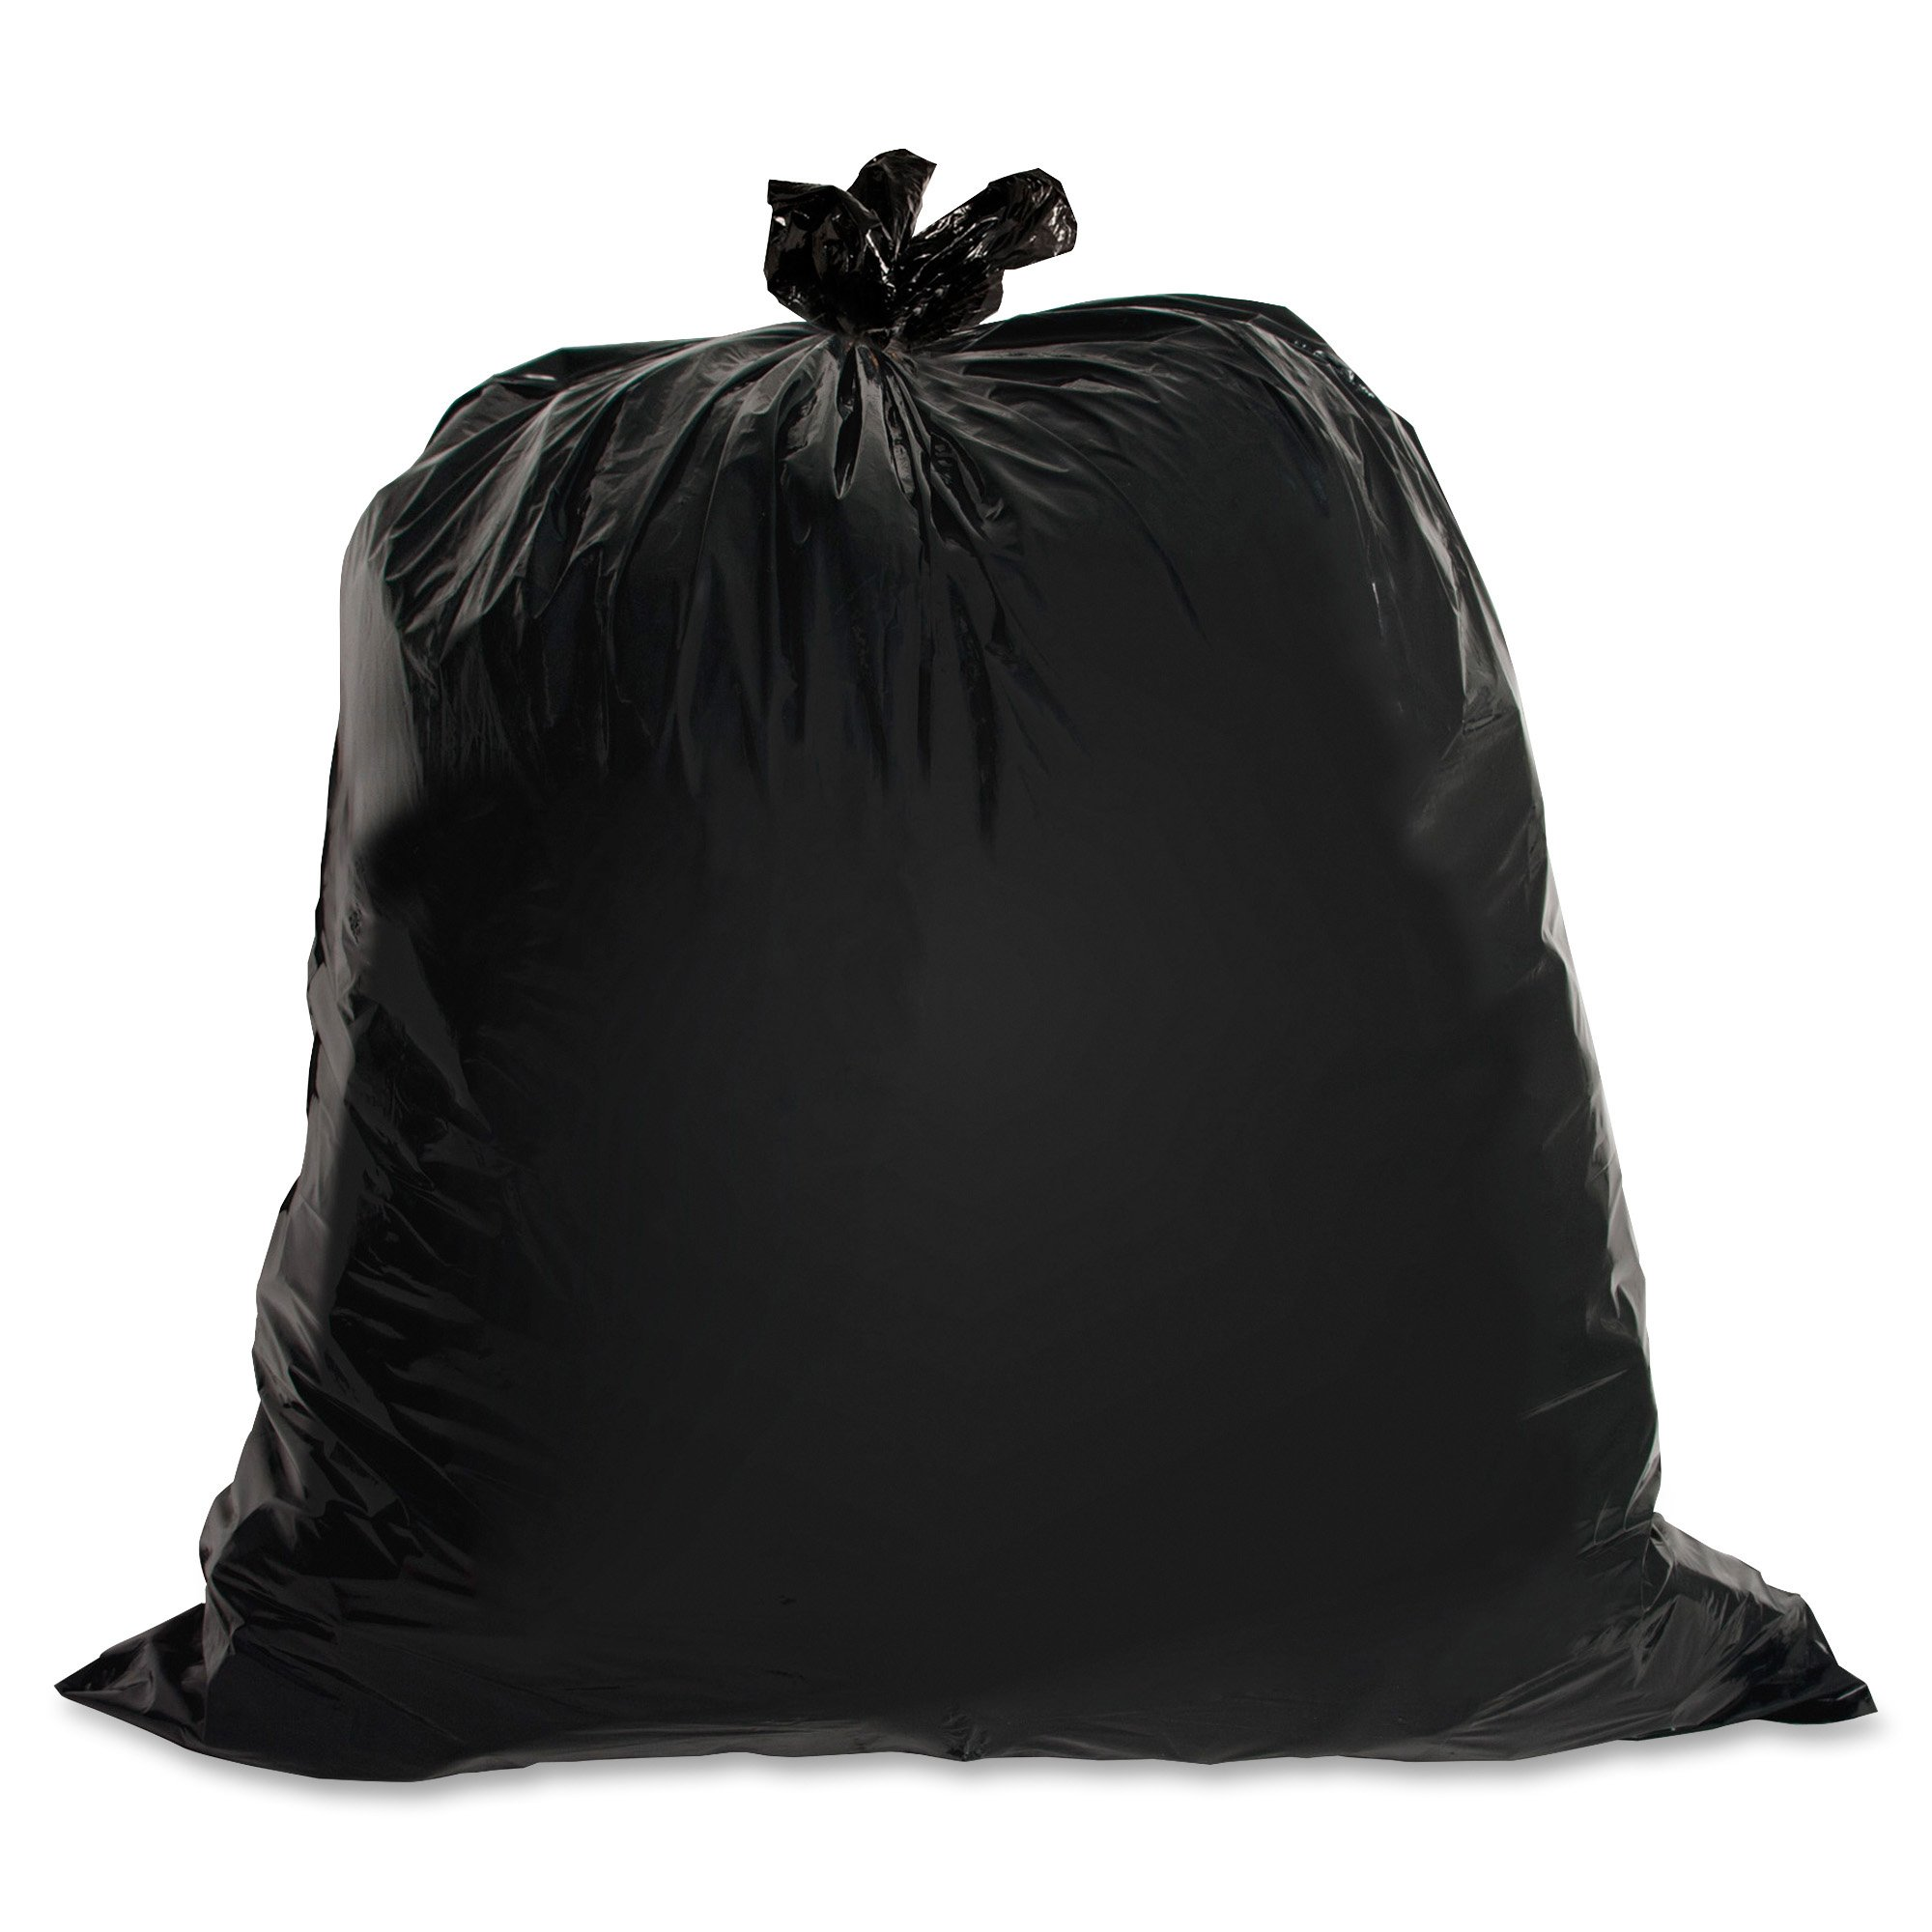 Genuine Joe GJO01534 Heavy Duty Low-Density Puncture Resistant Trash Bag, 45 gallon Capacity, 46'' Length x 39'' Width x 1.50 mil Thickness, Black (Box of 50)